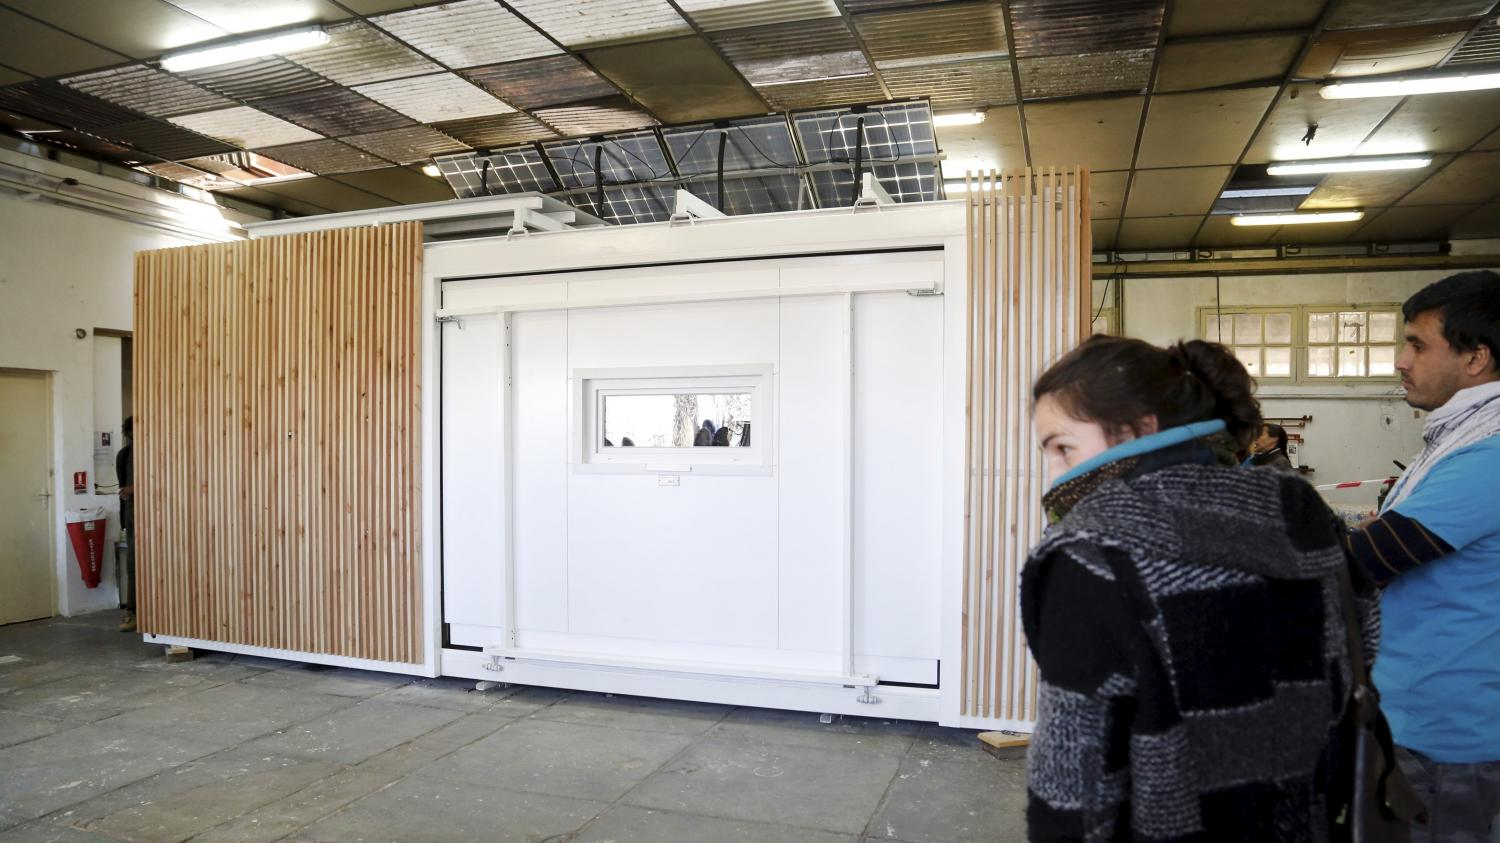 Grand froid une maison transportable con ue marseille for Maison transportable